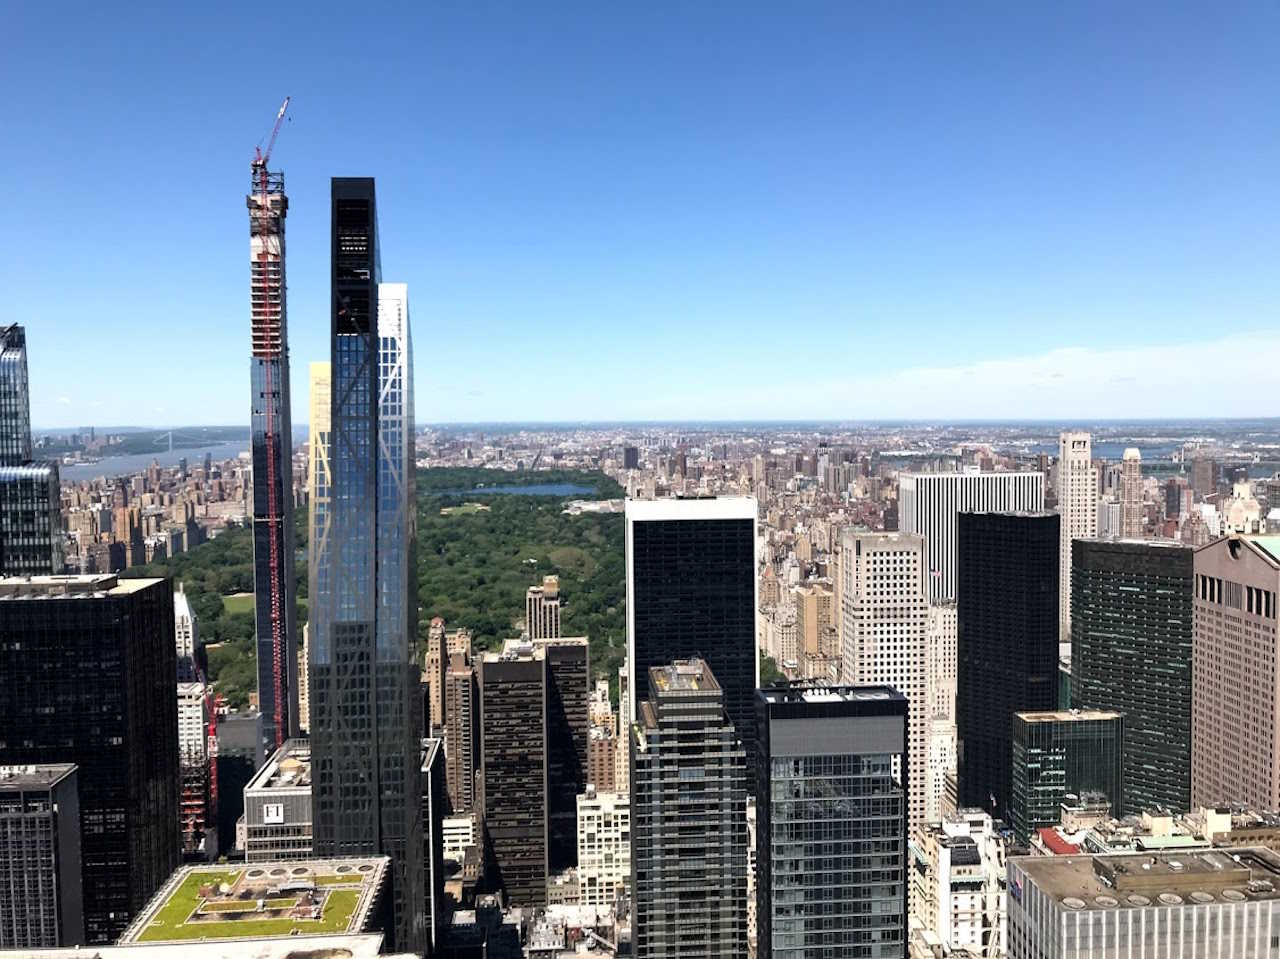 5-dage-i-new-york-top-of-the-rock